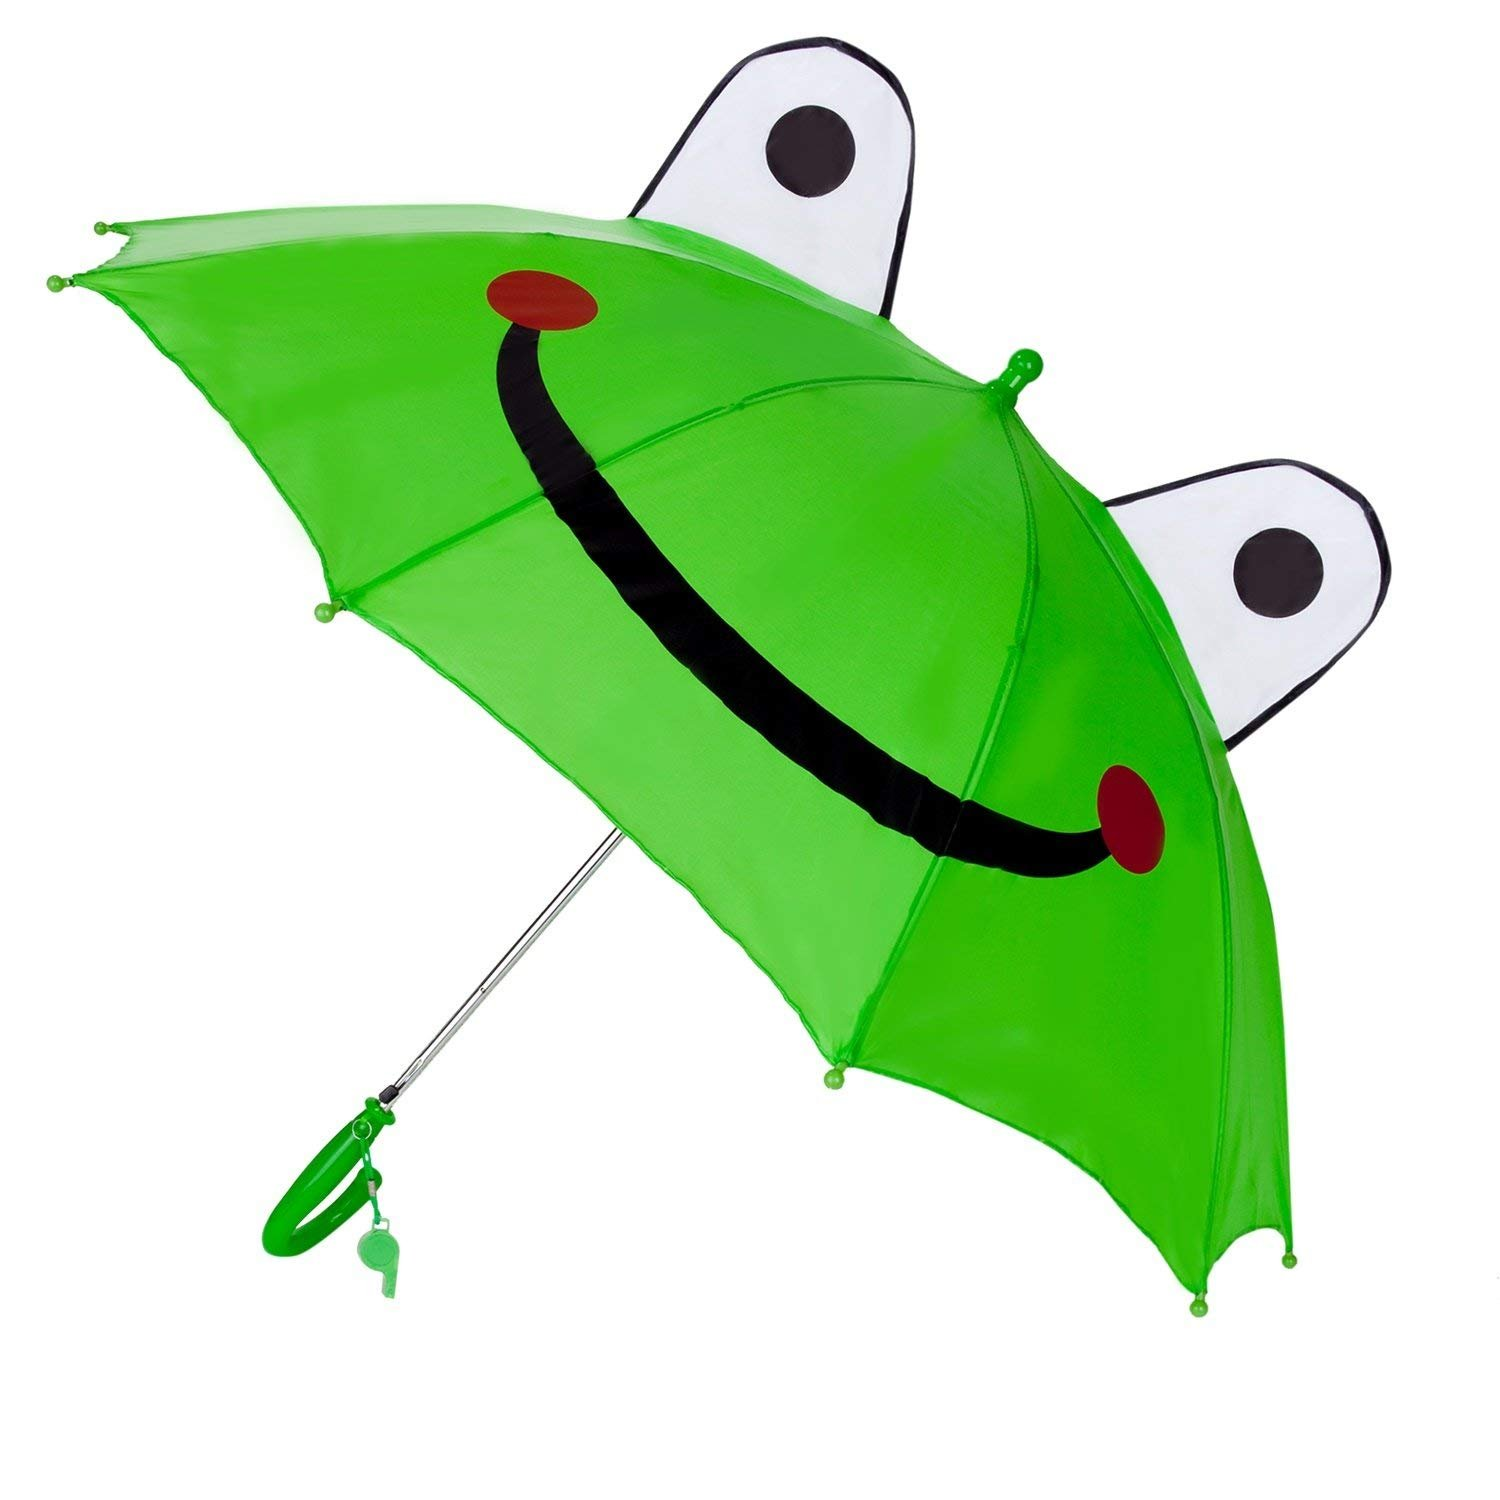 Maggie Cute Childish Funny Automatic animal Kids Umbrella/Rain gear/Rainproof/Rain Cover with UV Protection and Novelty Whistle Green Frog